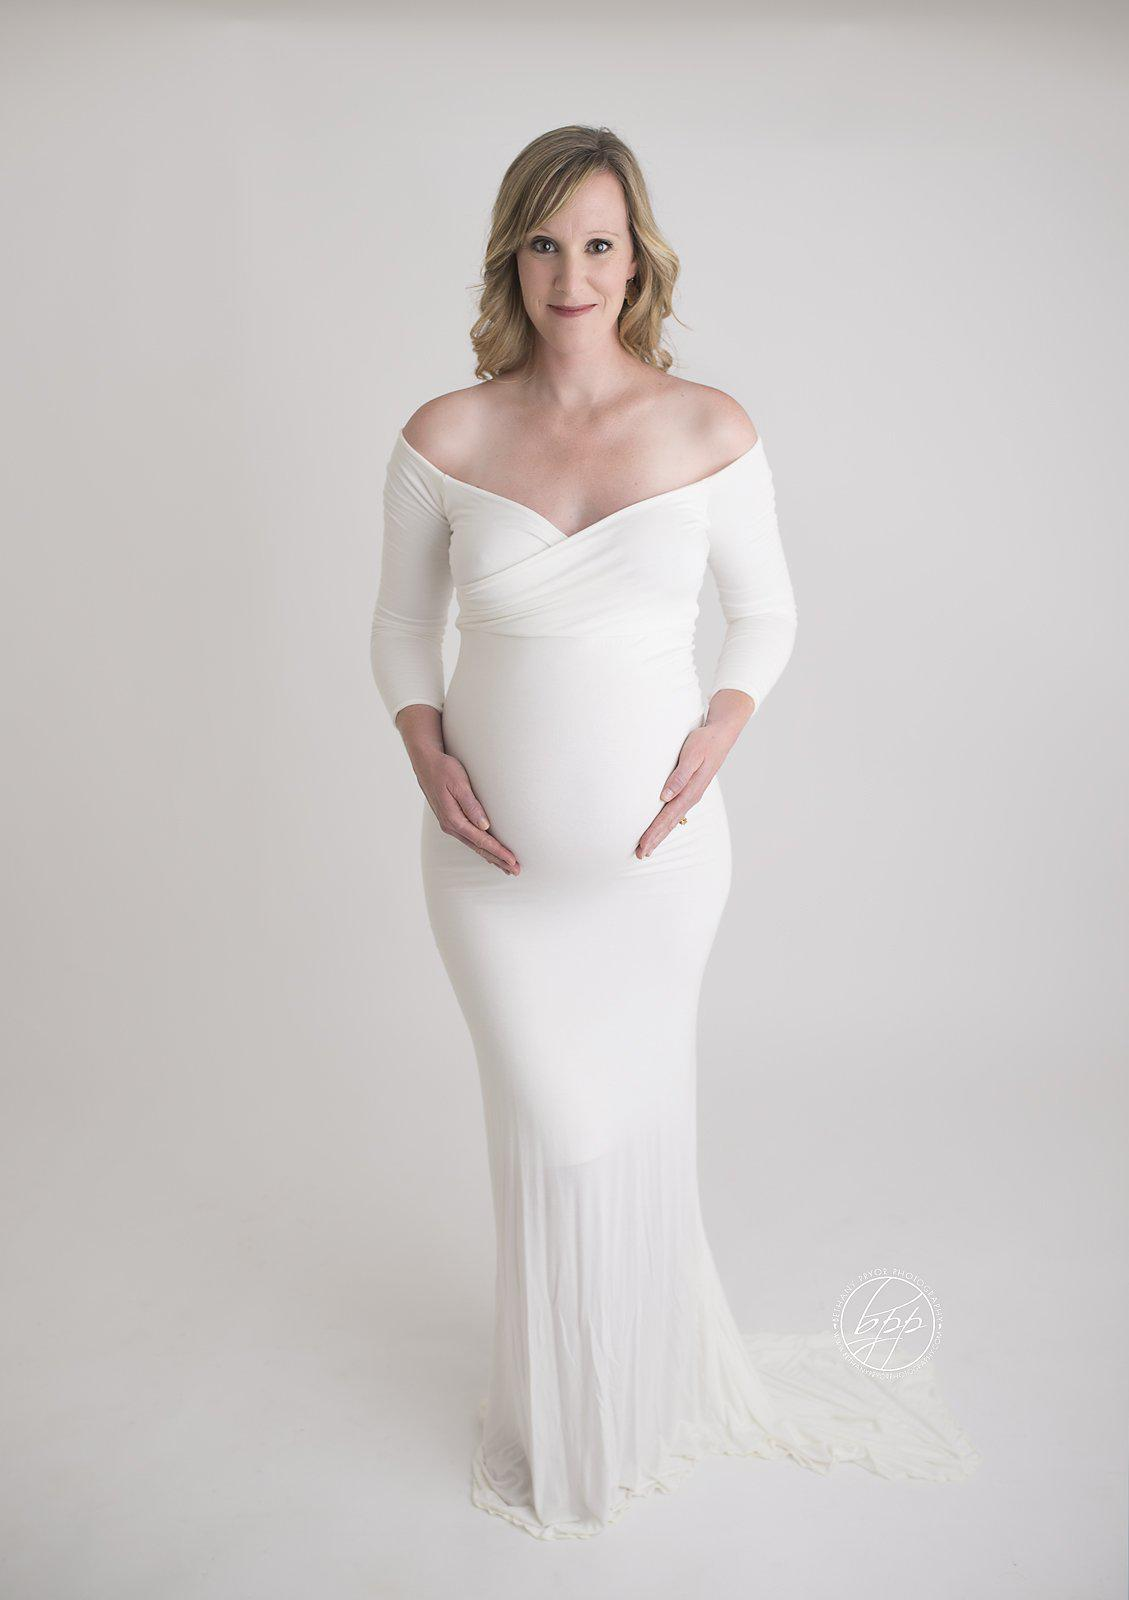 3e95dcc1b10b9 Emerlie Gown-Maternity Gown-Sew Trendy Accessories